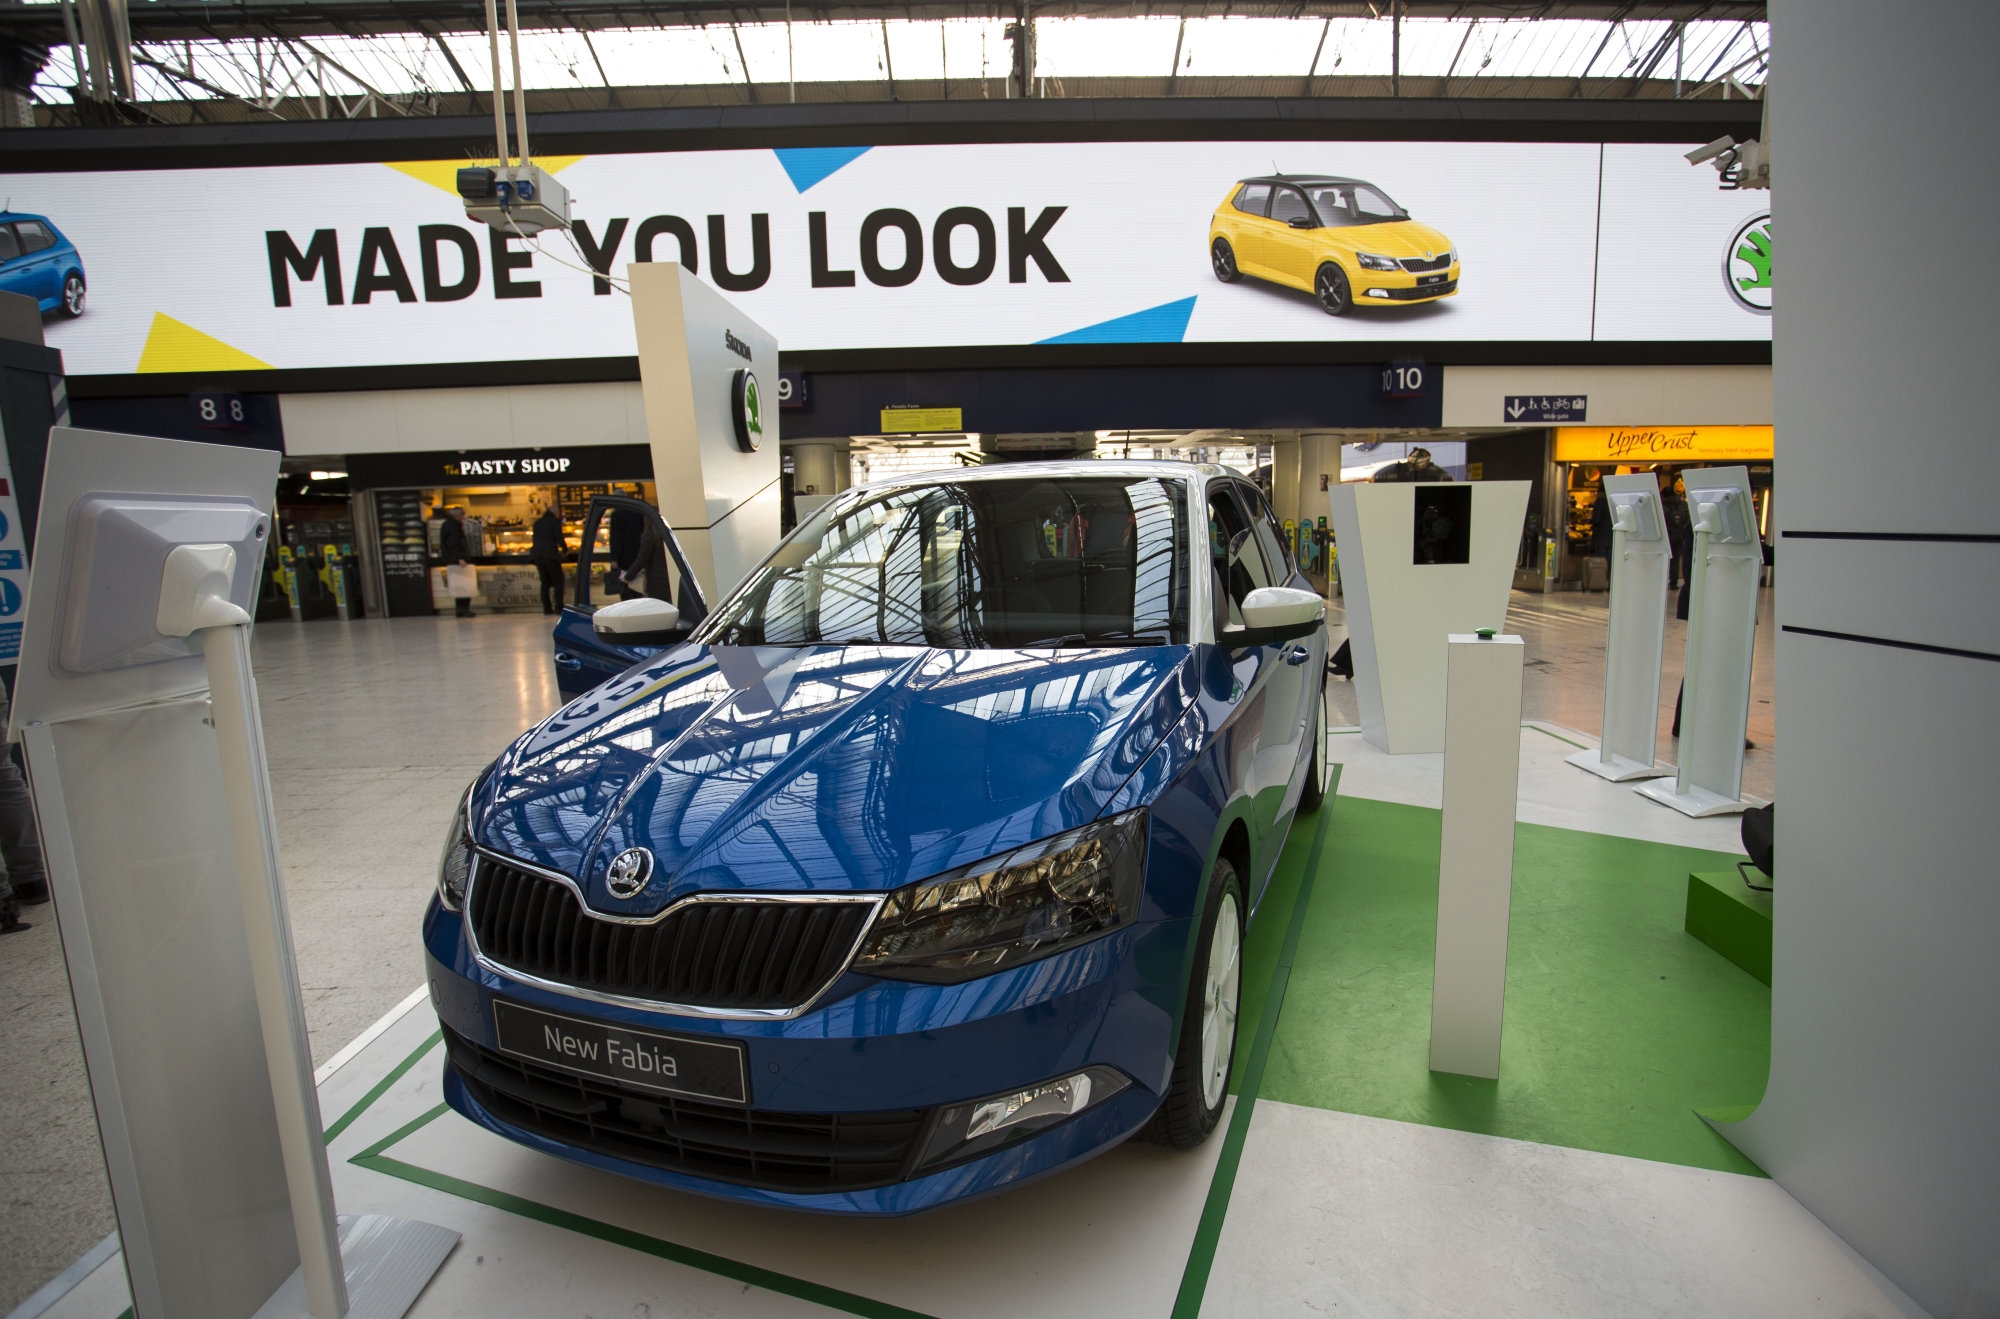 Škoda AR Campaign Puts Commuters in the Driving Seat